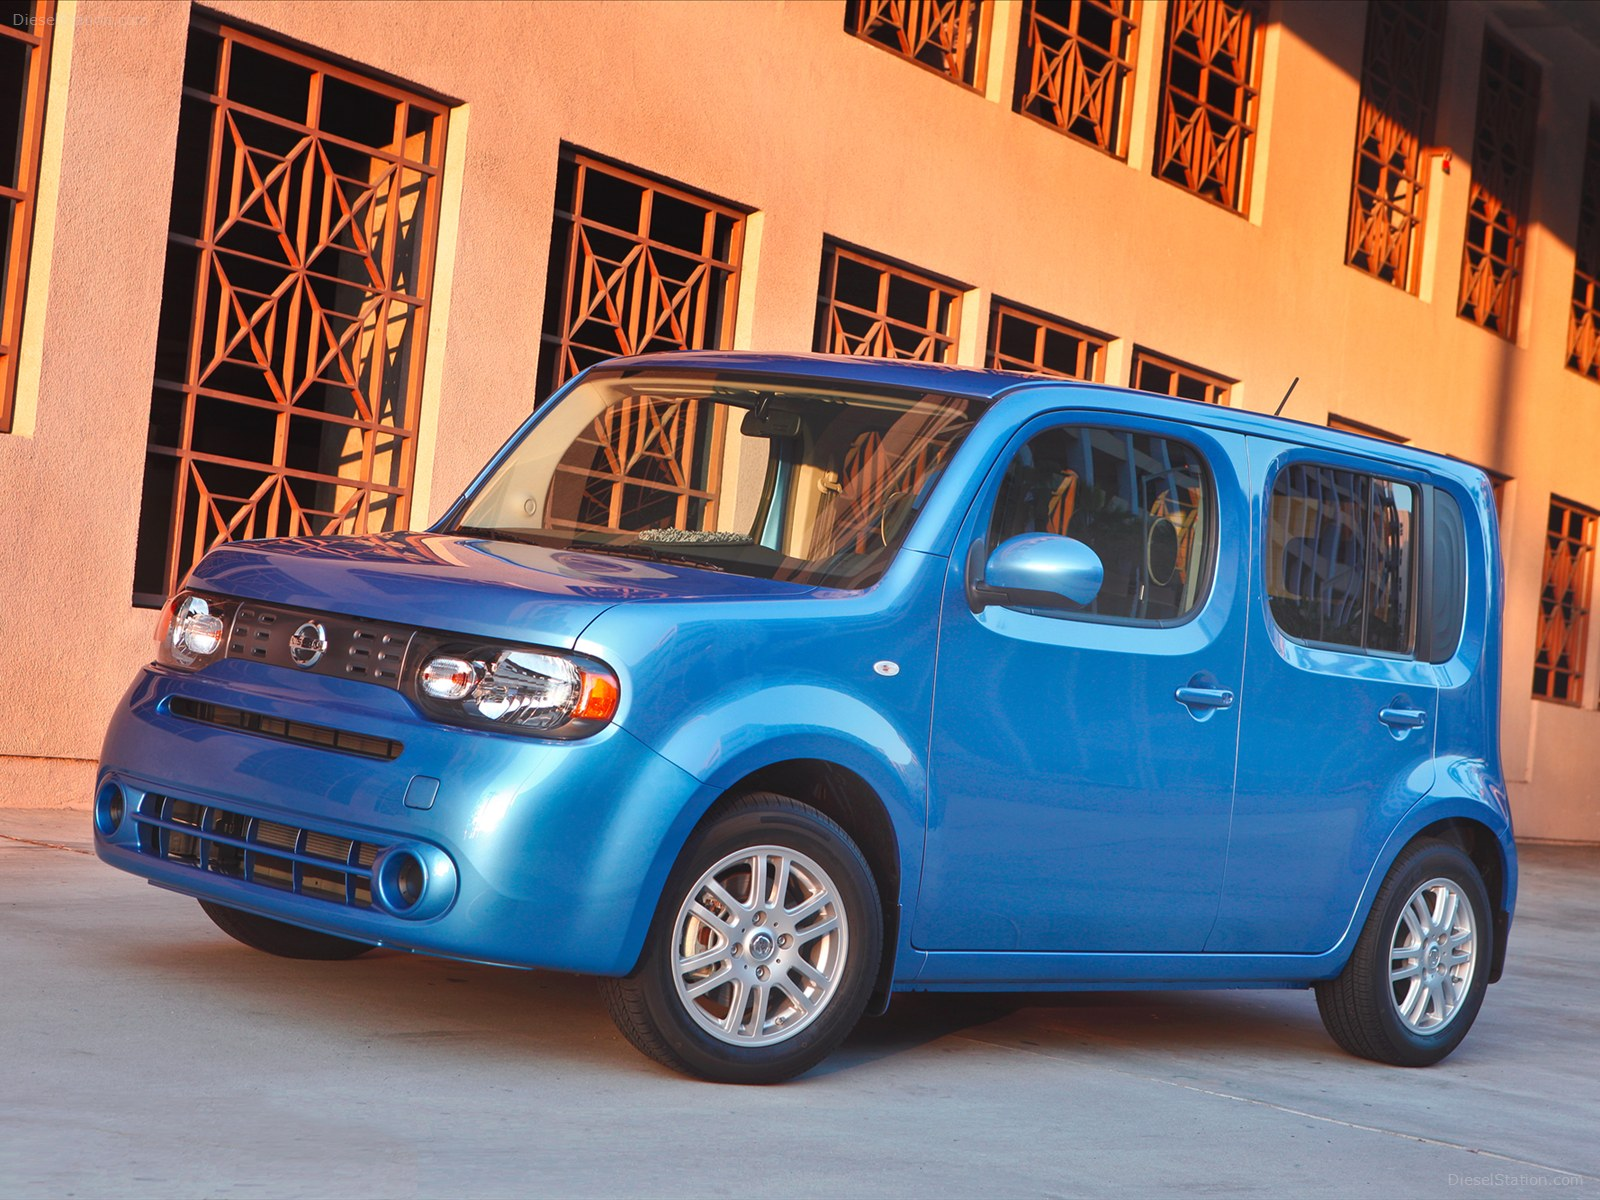 Nissan Cube 2012 Exotic Car Wallpapers 08 of 50 Diesel Station 1600x1200